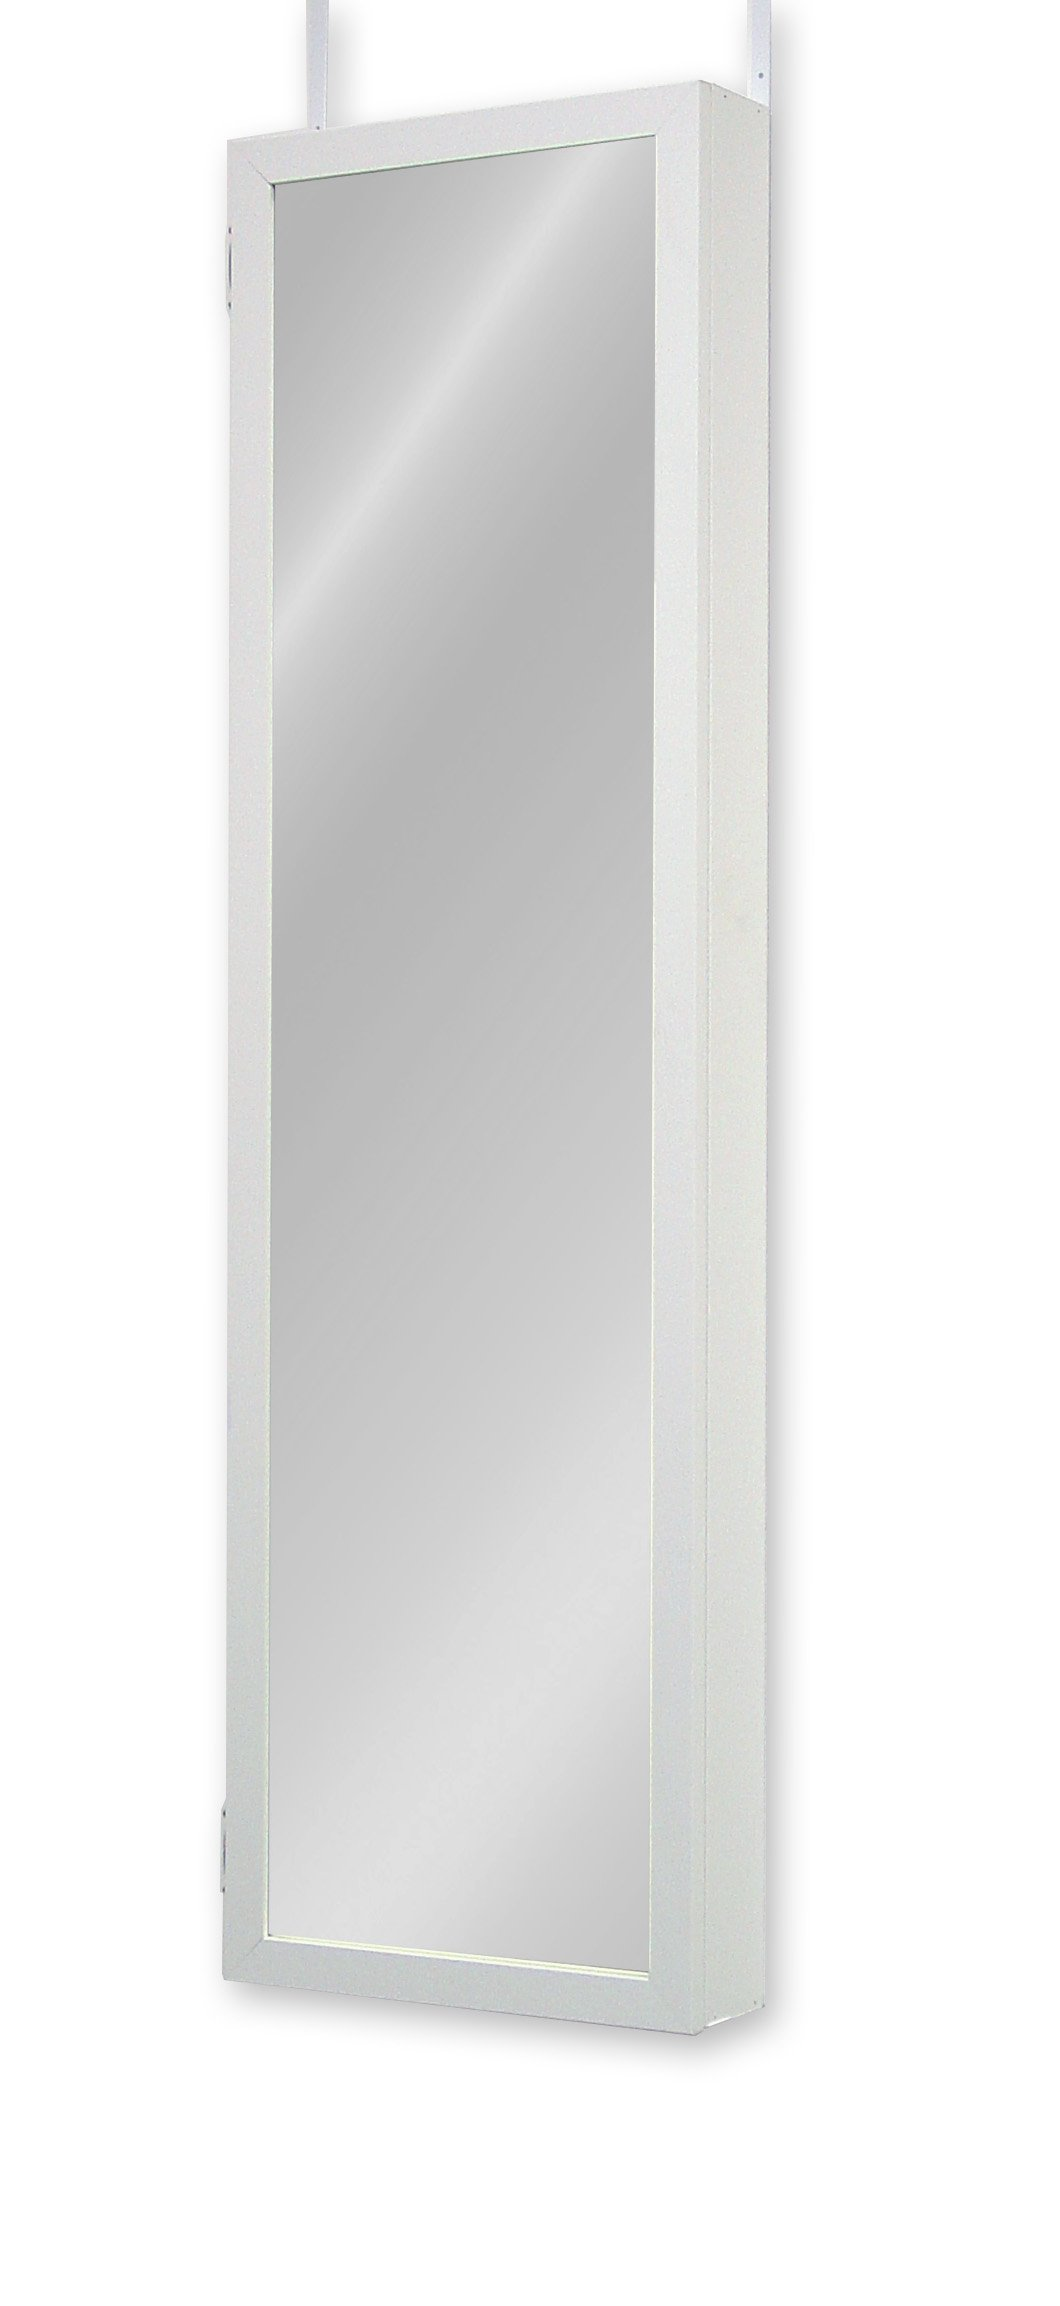 Plaza Astoria Wall/Door-Mount Jewelry Armoire, White by Plaza Astoria (Image #3)